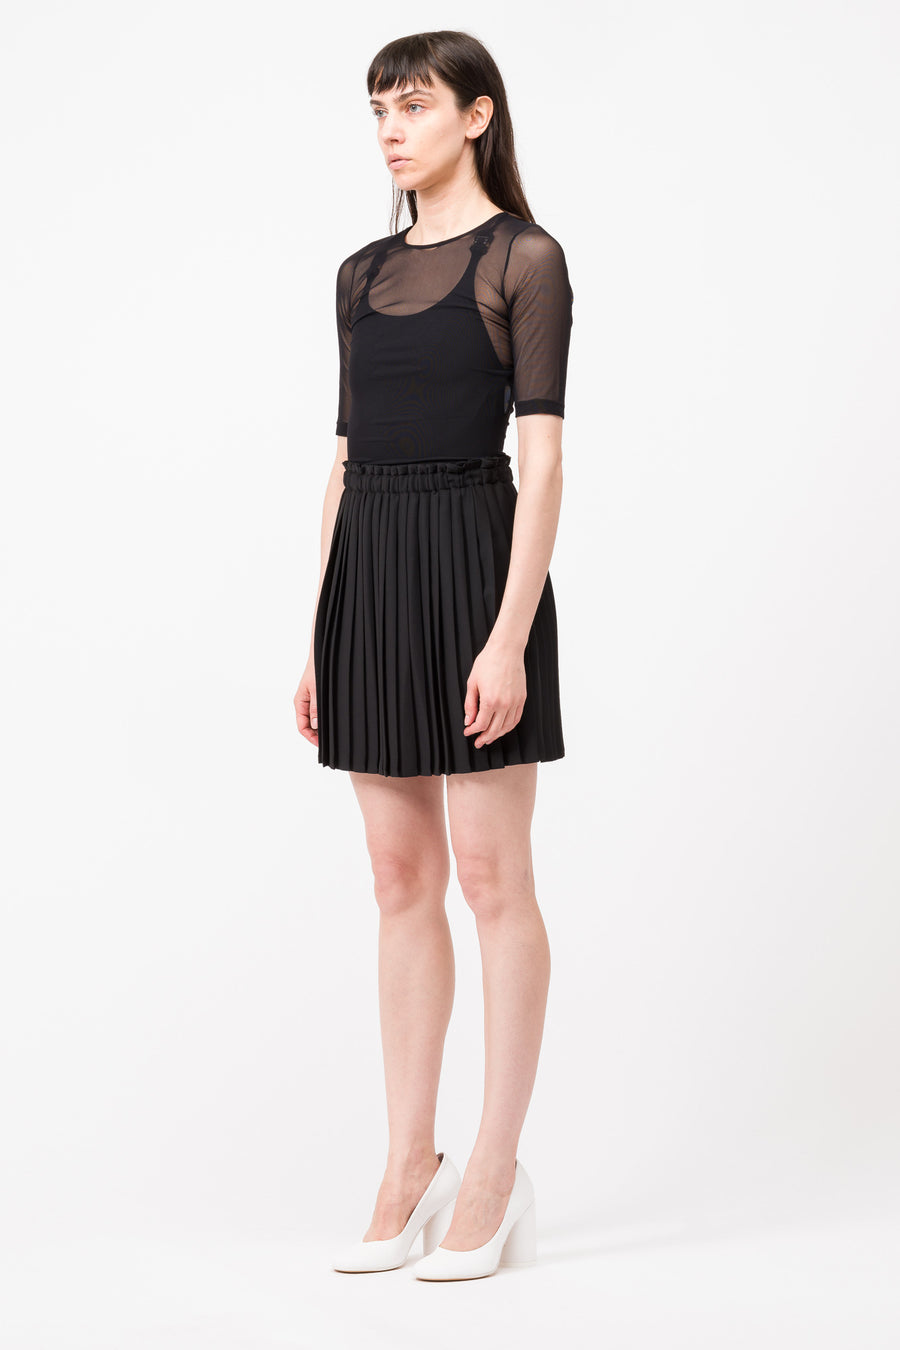 Maison Margiela MM6 S/S Mesh Top and Pleated Skirt in Black - Notre